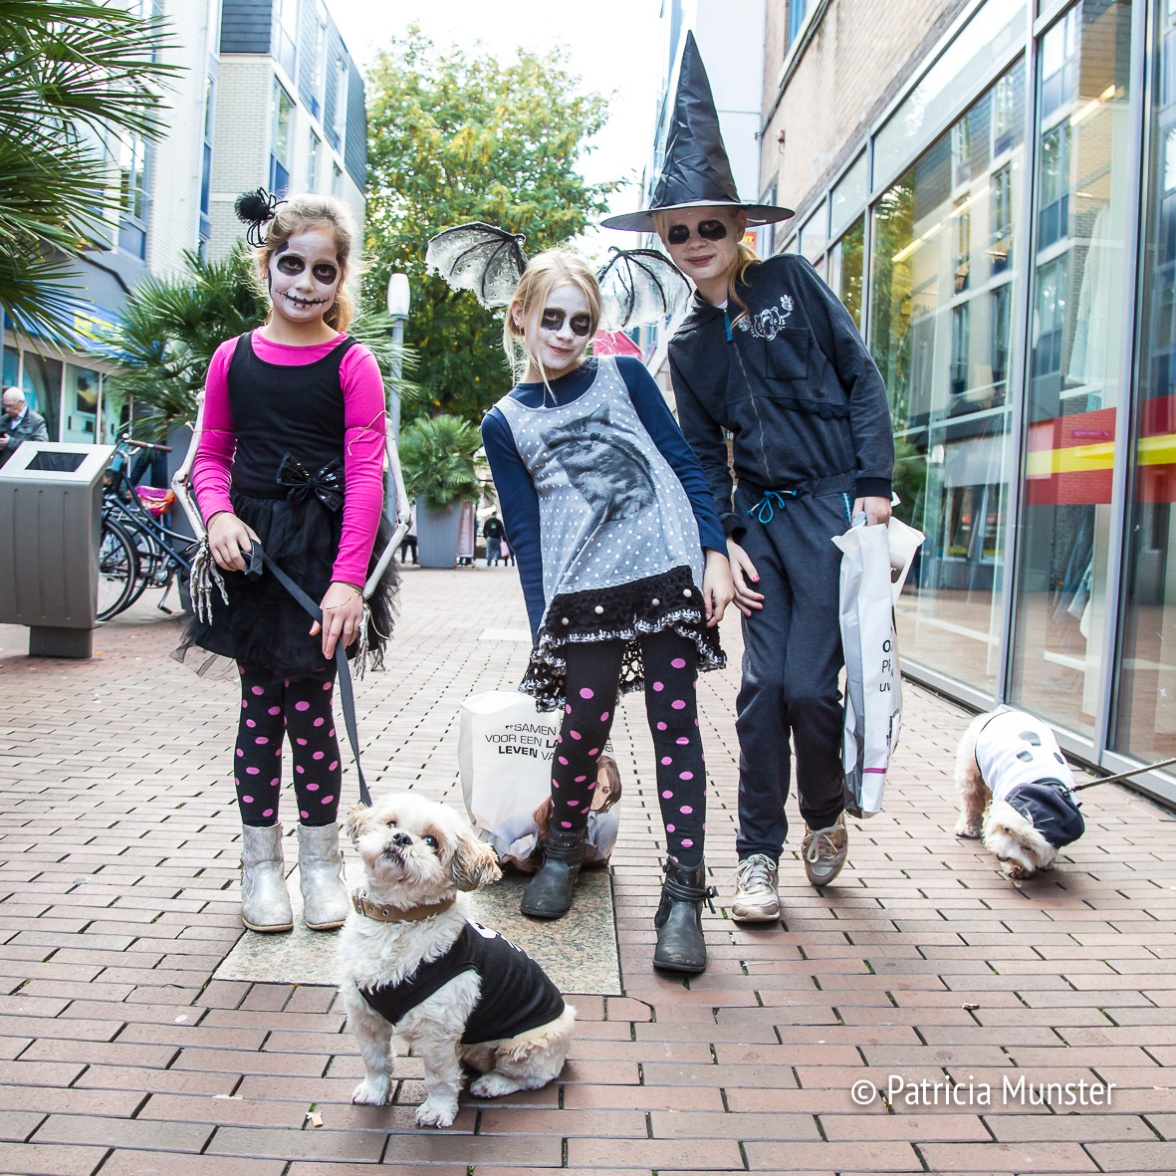 halloween-dog-parade-zoetermeer-patricia-munster-29